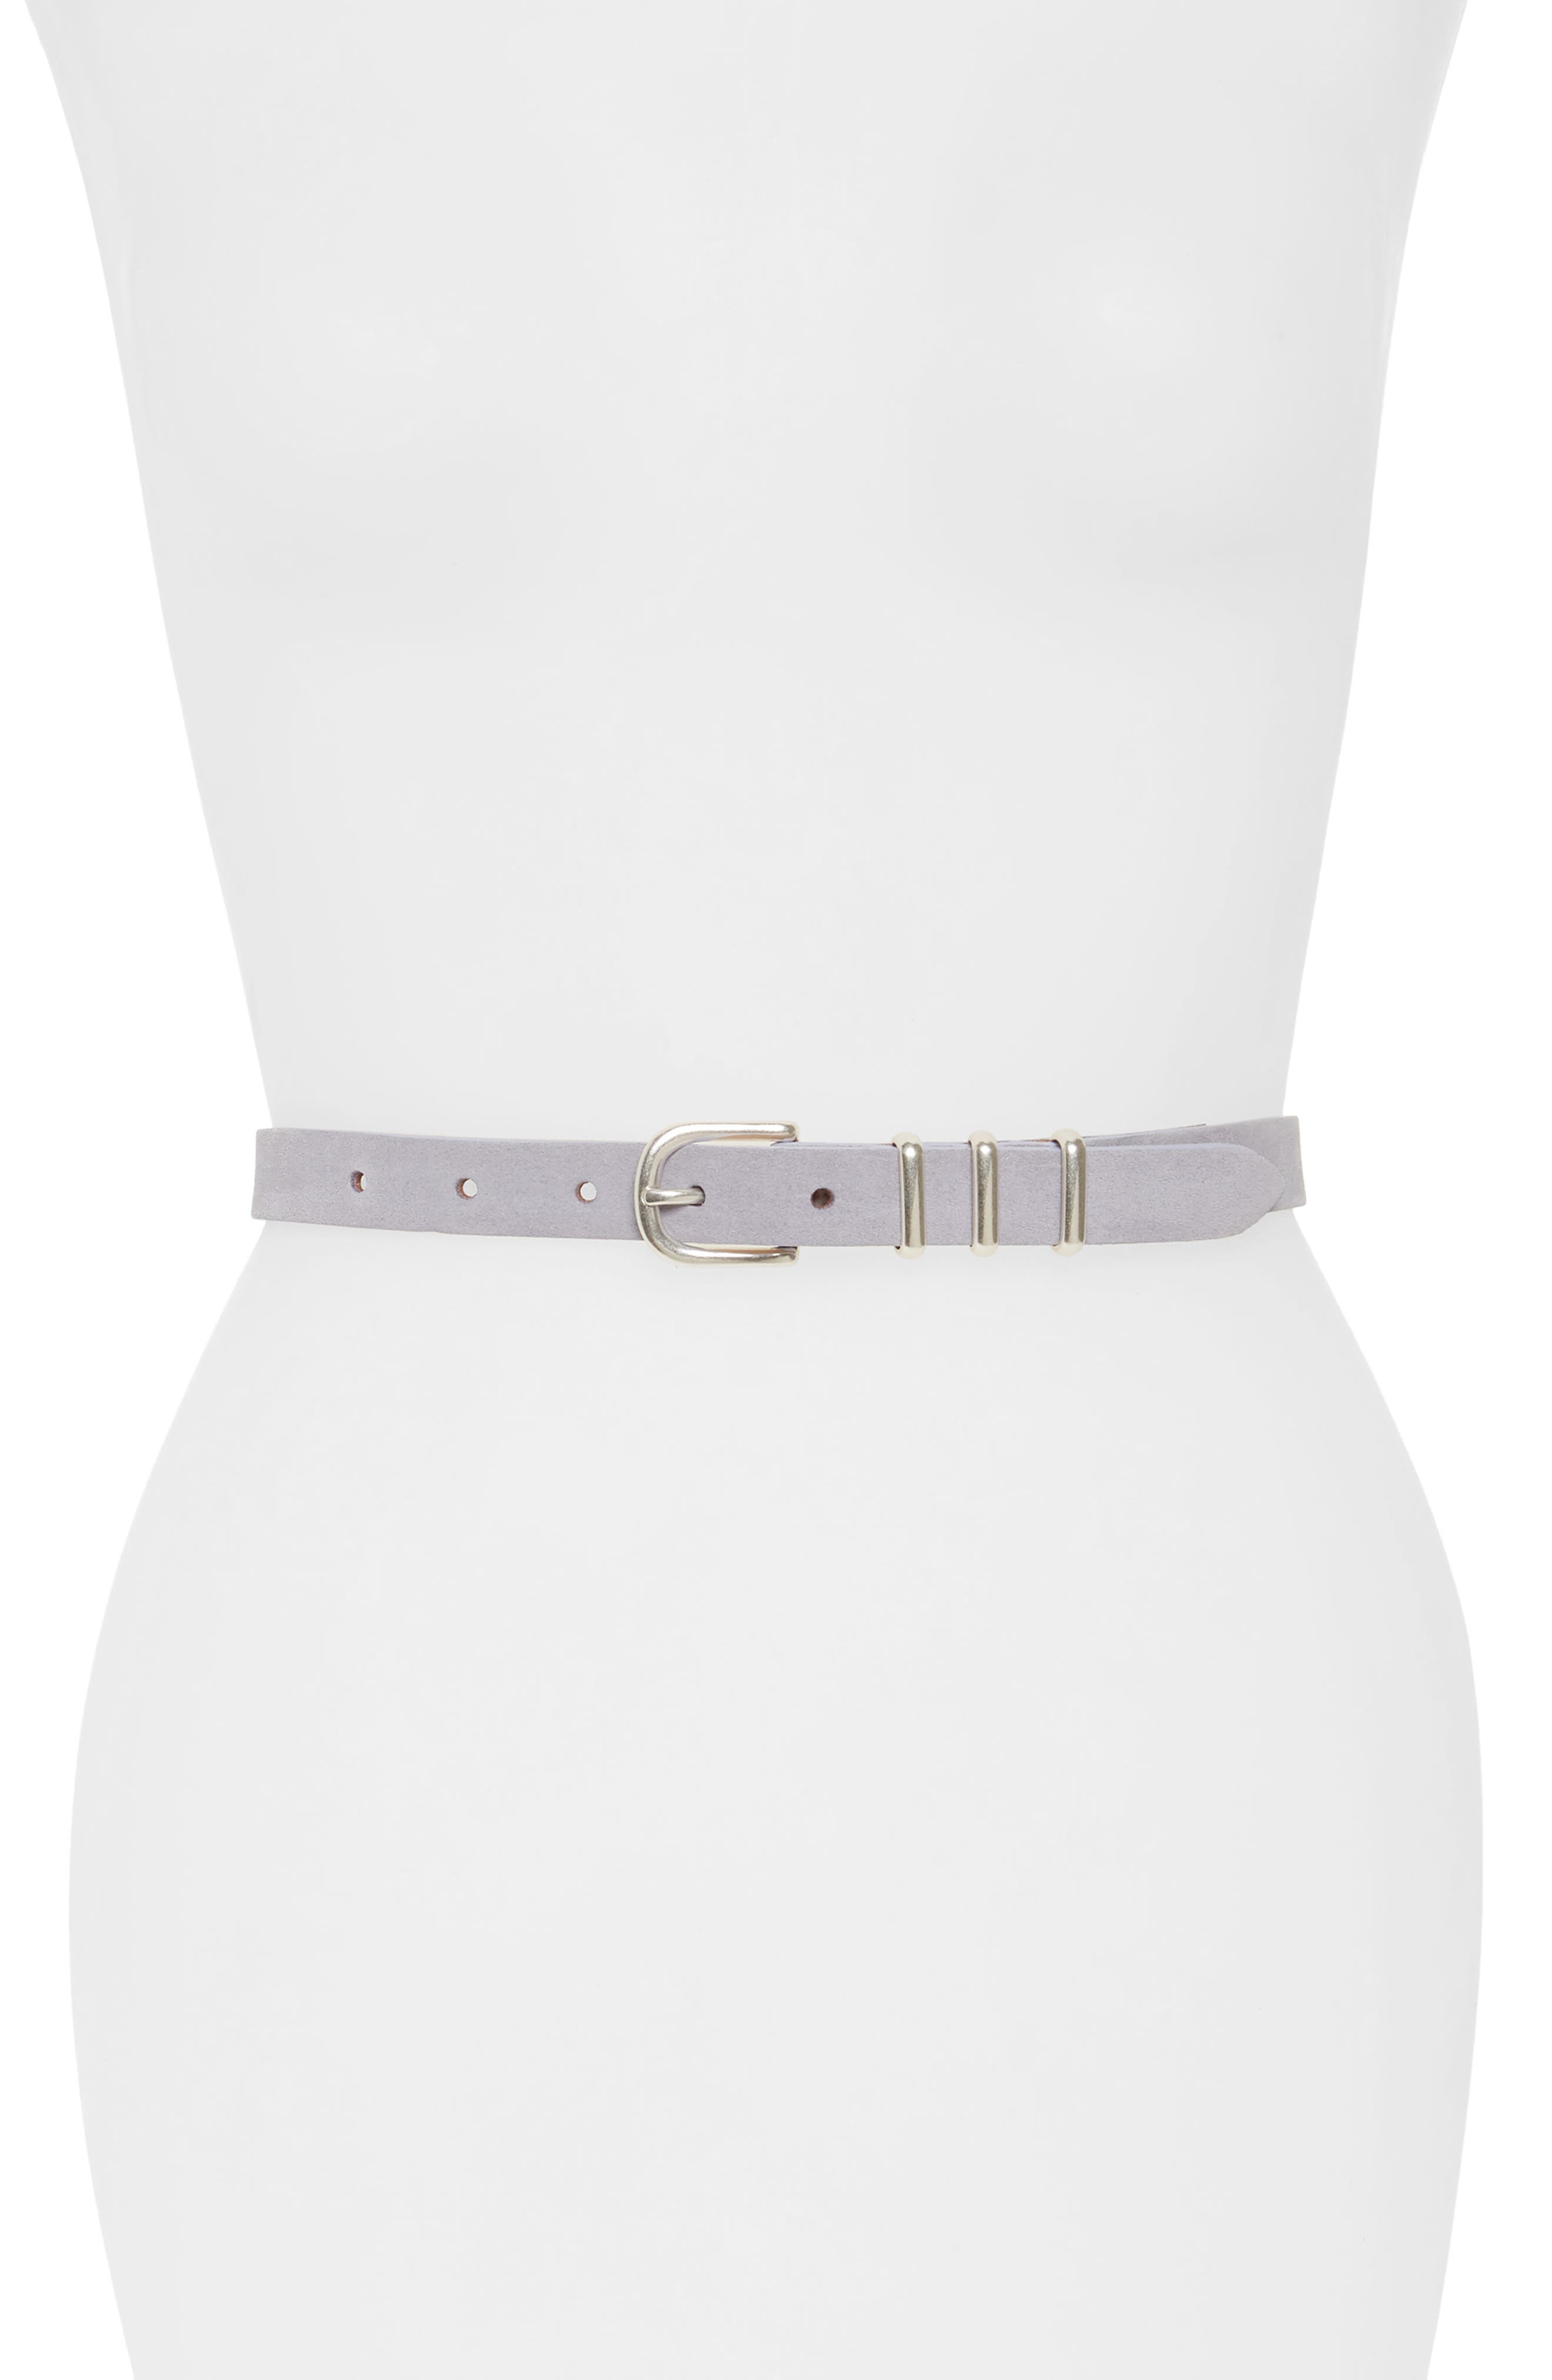 'Jet' Skinny Leather Belt,                         Main,                         color, LILAC SUEDE